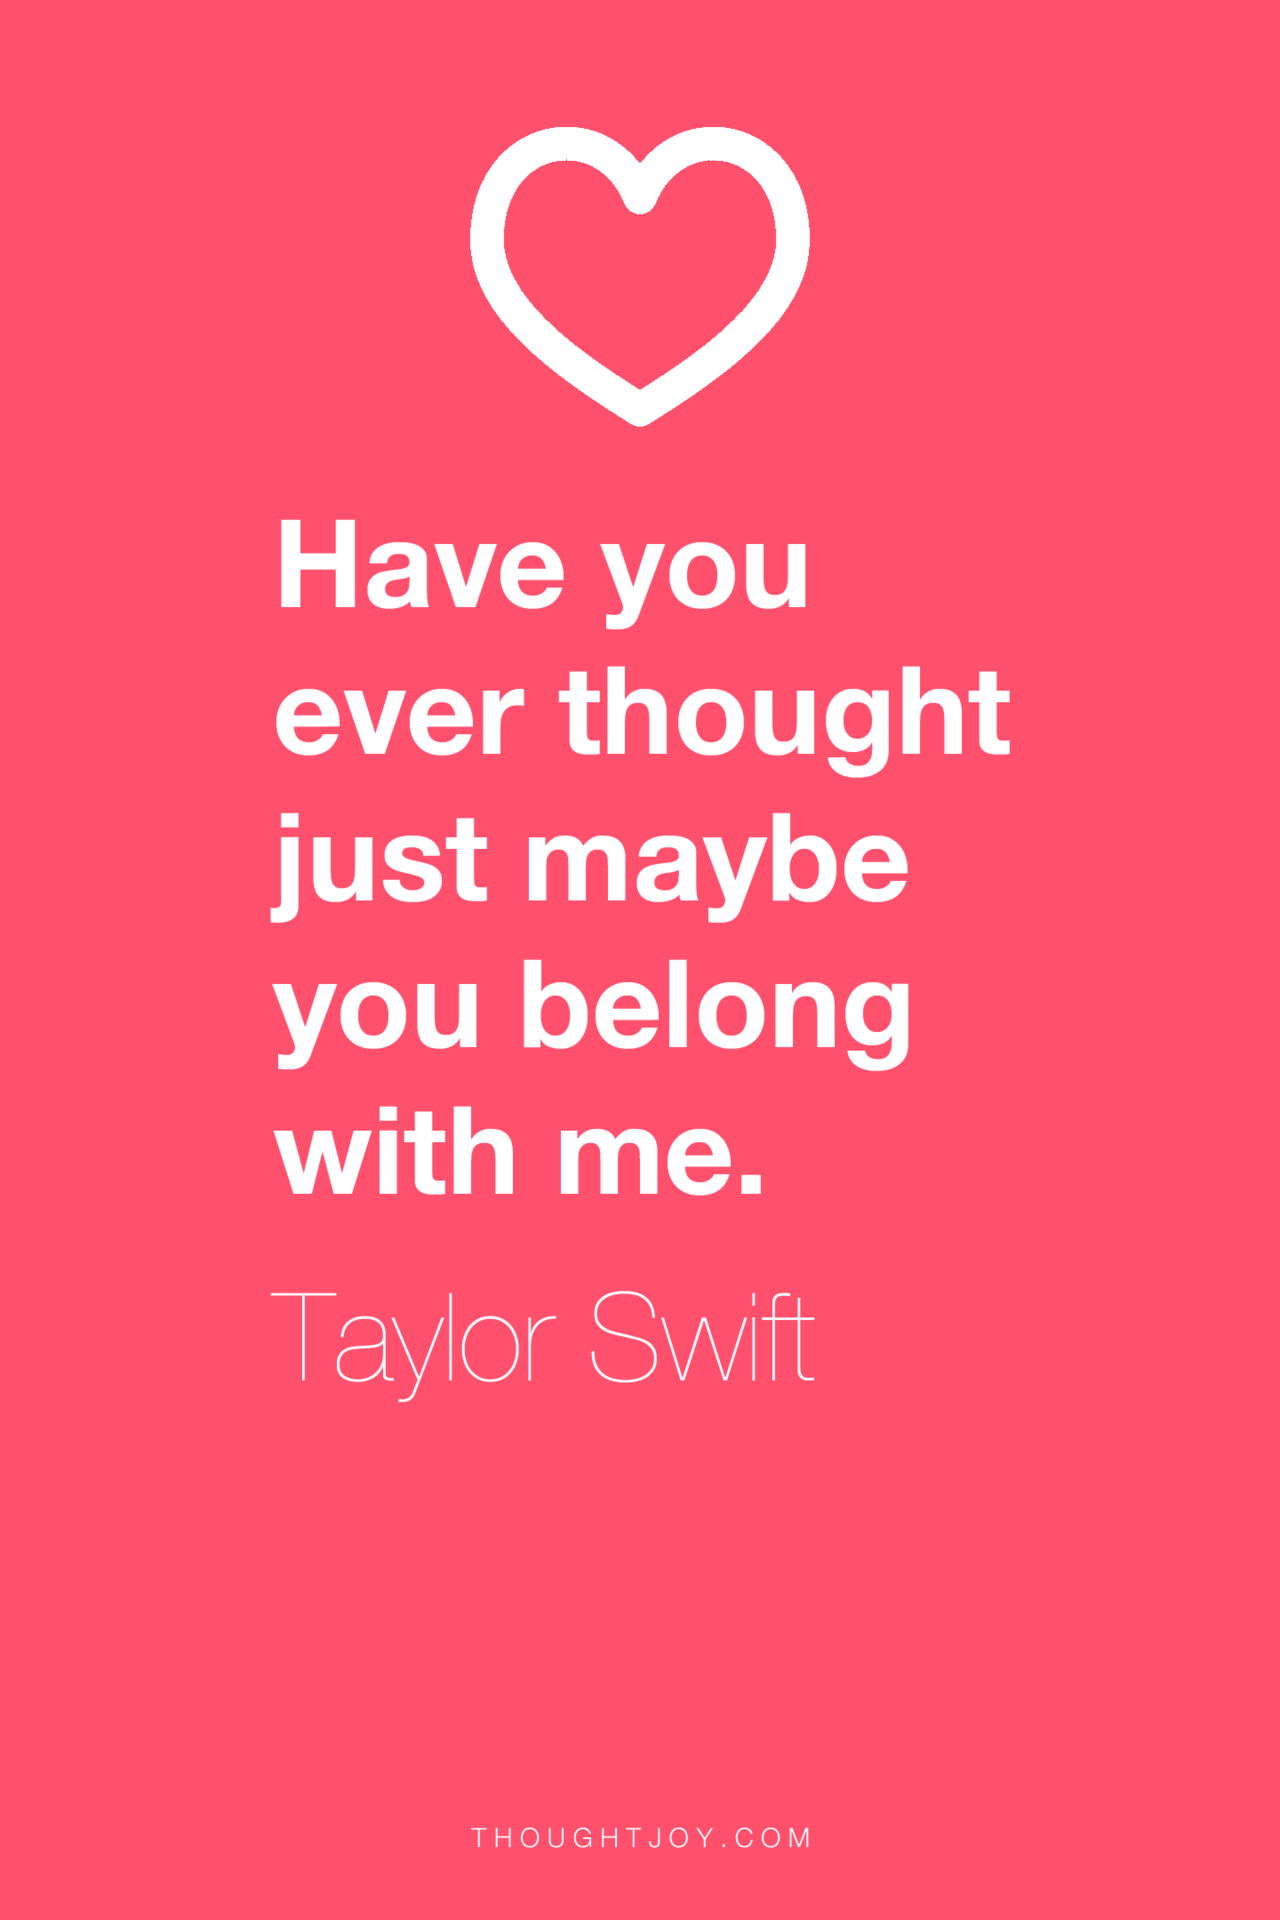 Have You Ever Just Thought Just Maybe You Belong With Me Taylor Swift Quote Quotes Design Typo Taylor Swift Lyrics Taylor Swift Quotes Song Quotes